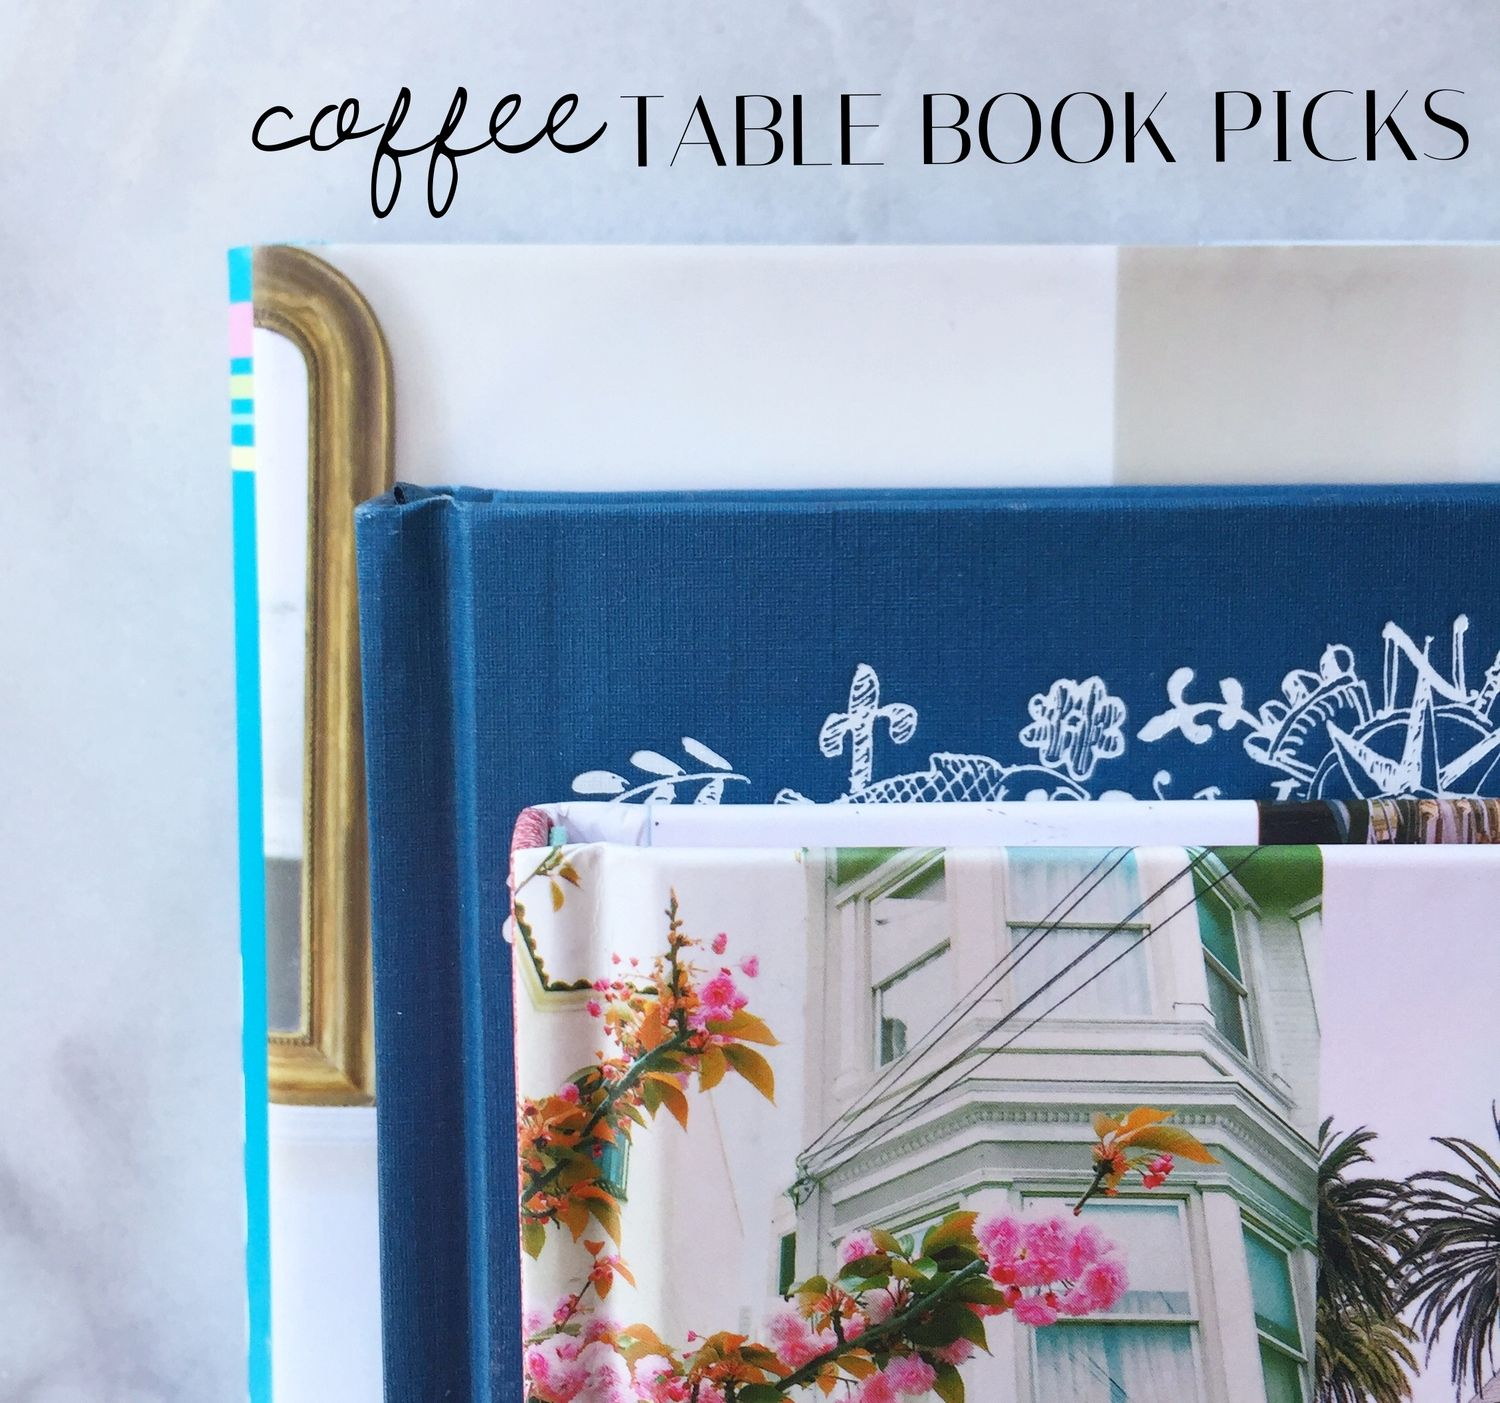 Coffee Table Book Picks